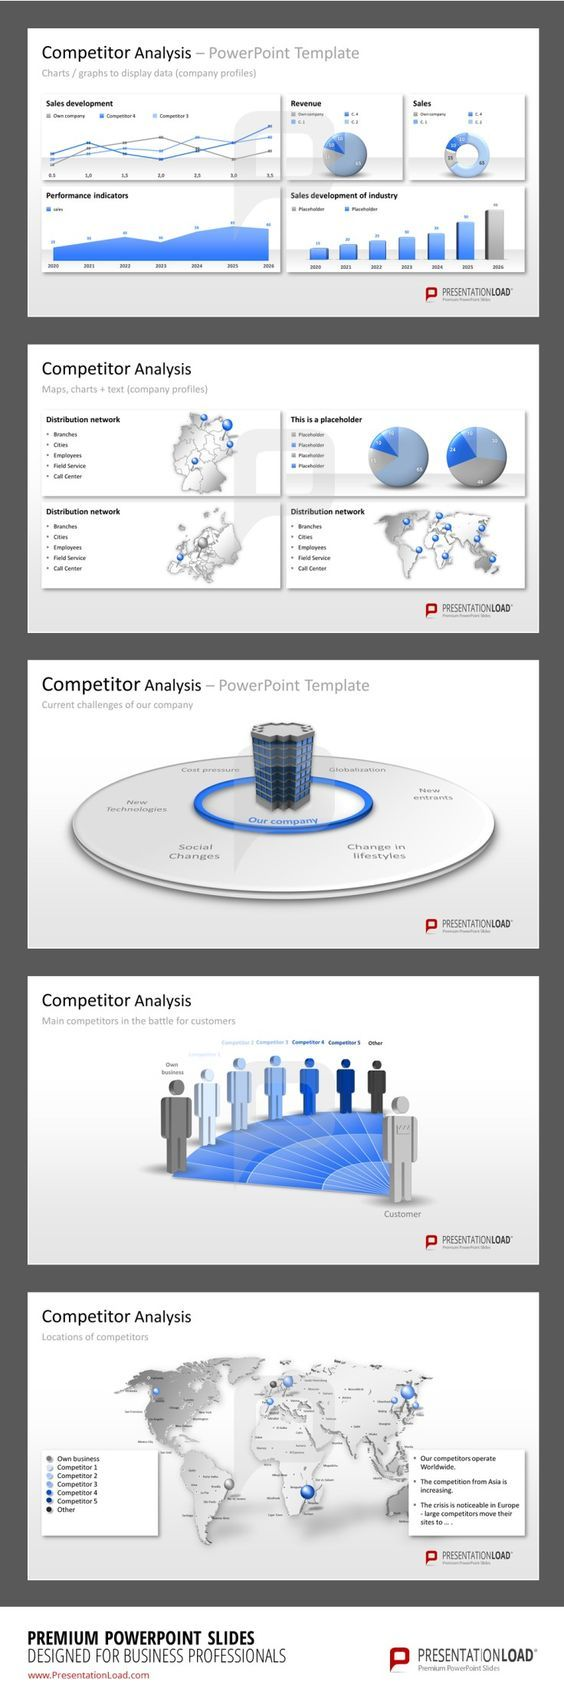 Competitor Analysis PowerPoint Templates The Competitor Analysis PowerPoint Templates contain a variety of Charts and Graphs to display and compare important data of your company and your competitors.   #presentationload  http://www.presentationload.com/competitor-analysis.html: